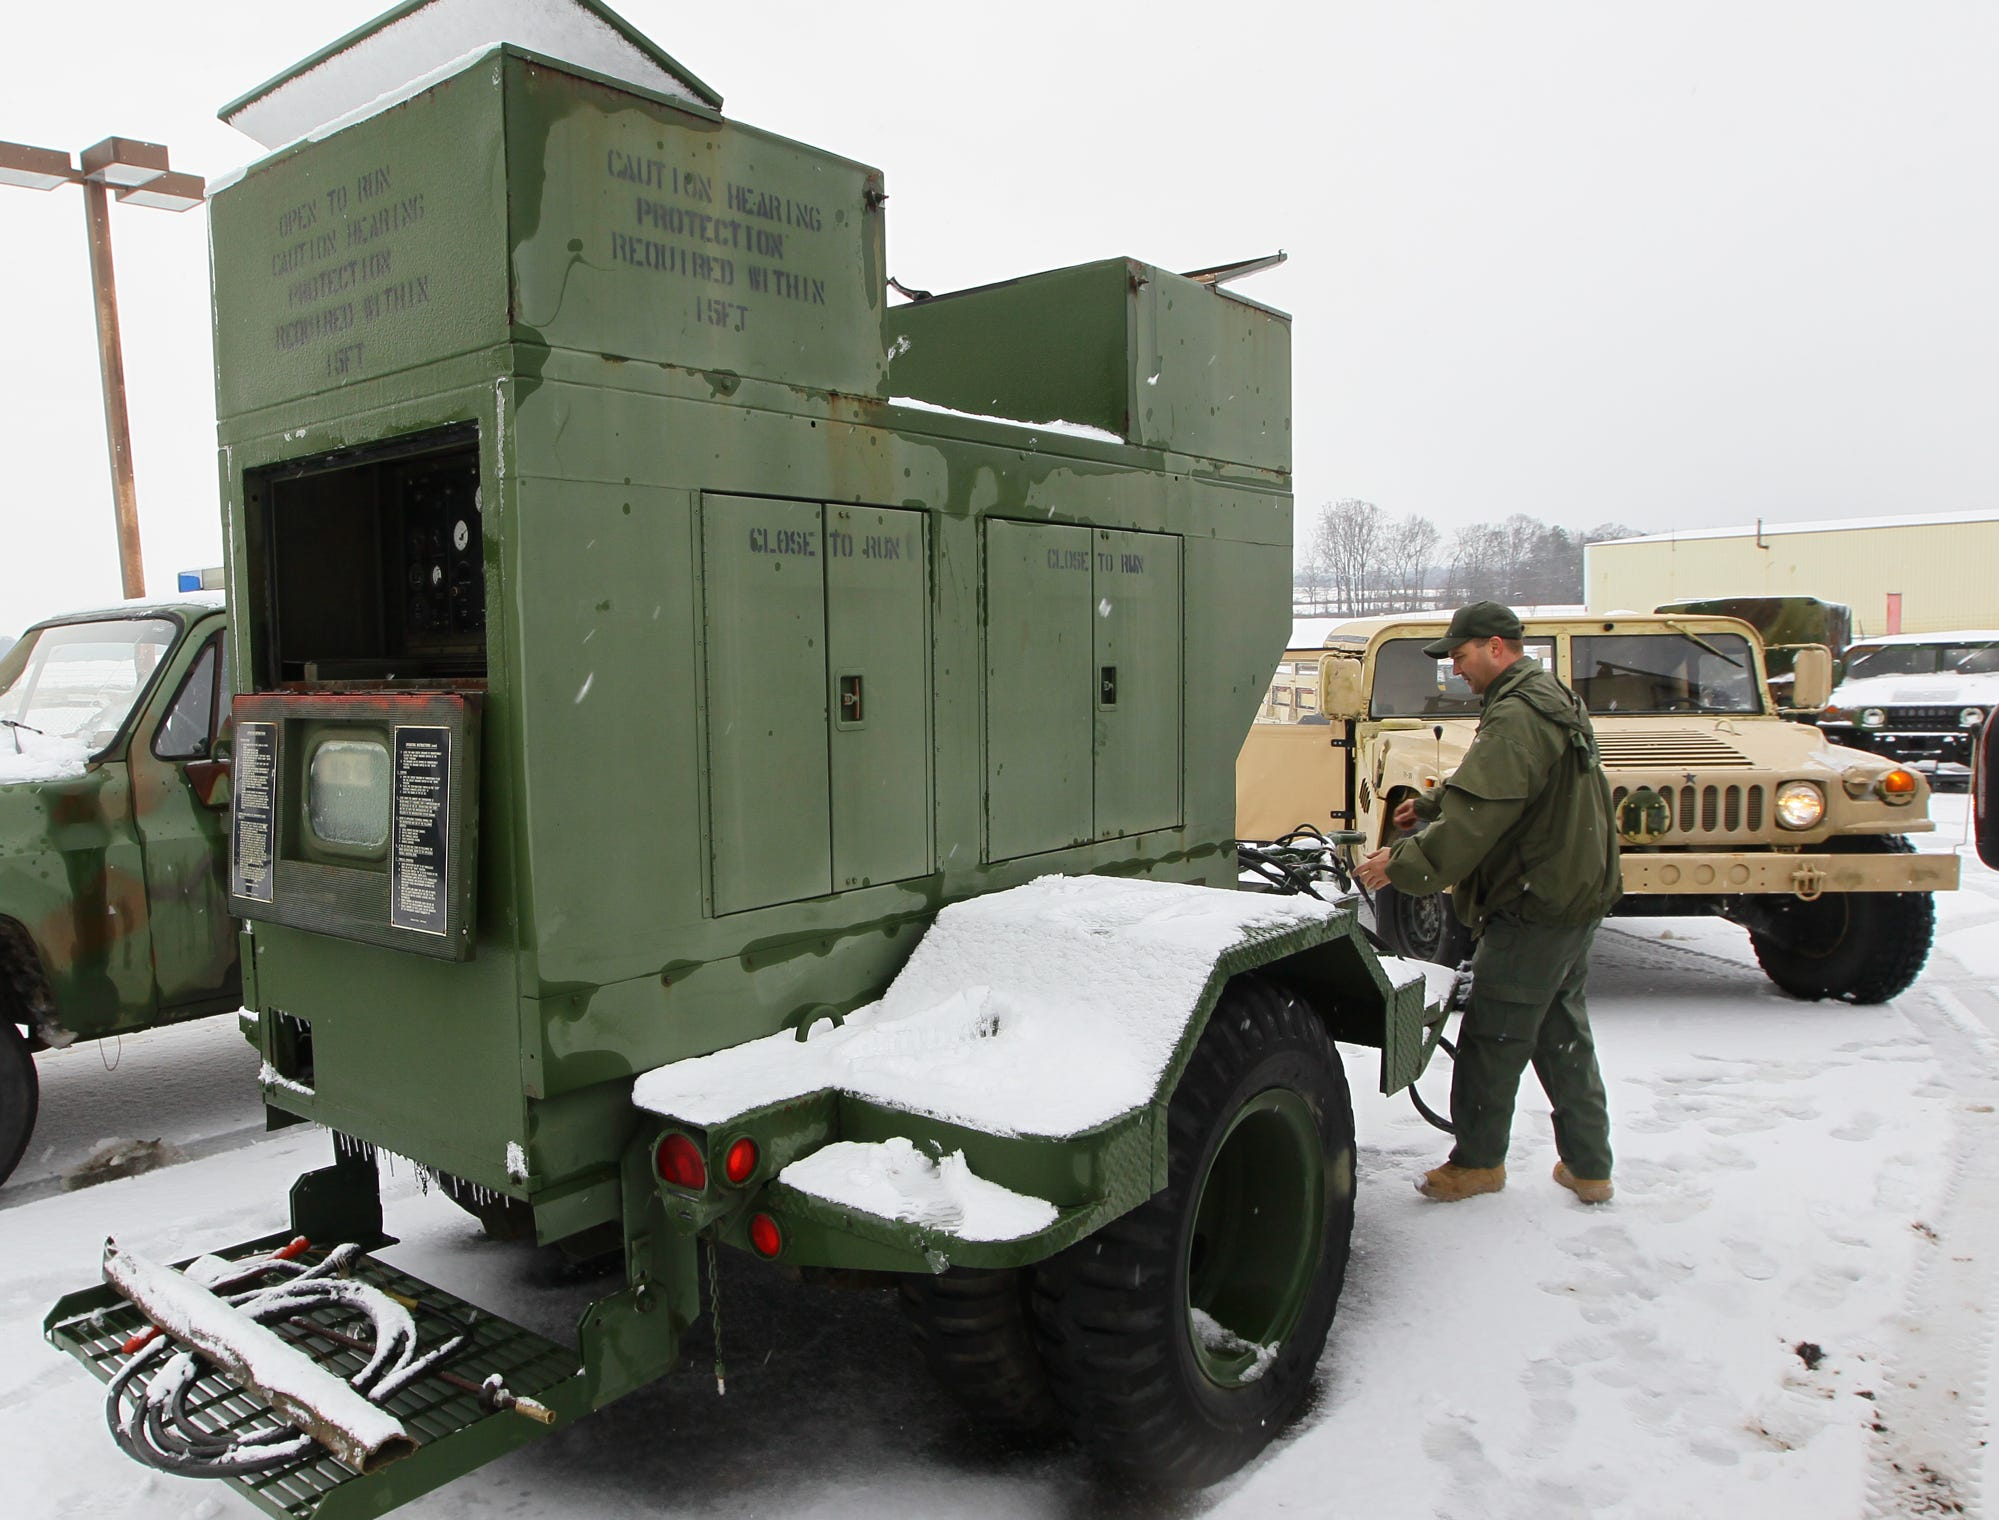 James Culbertson, a radio technician with the Anderson County Sheriff's office, tests a 30 Kilowatt generator they acquired from Fort Jackson, at their office at the Anderson Regional Airport. The generator is ready for use in a power outage, keeping a command center operationalduring the first snow of 2014.